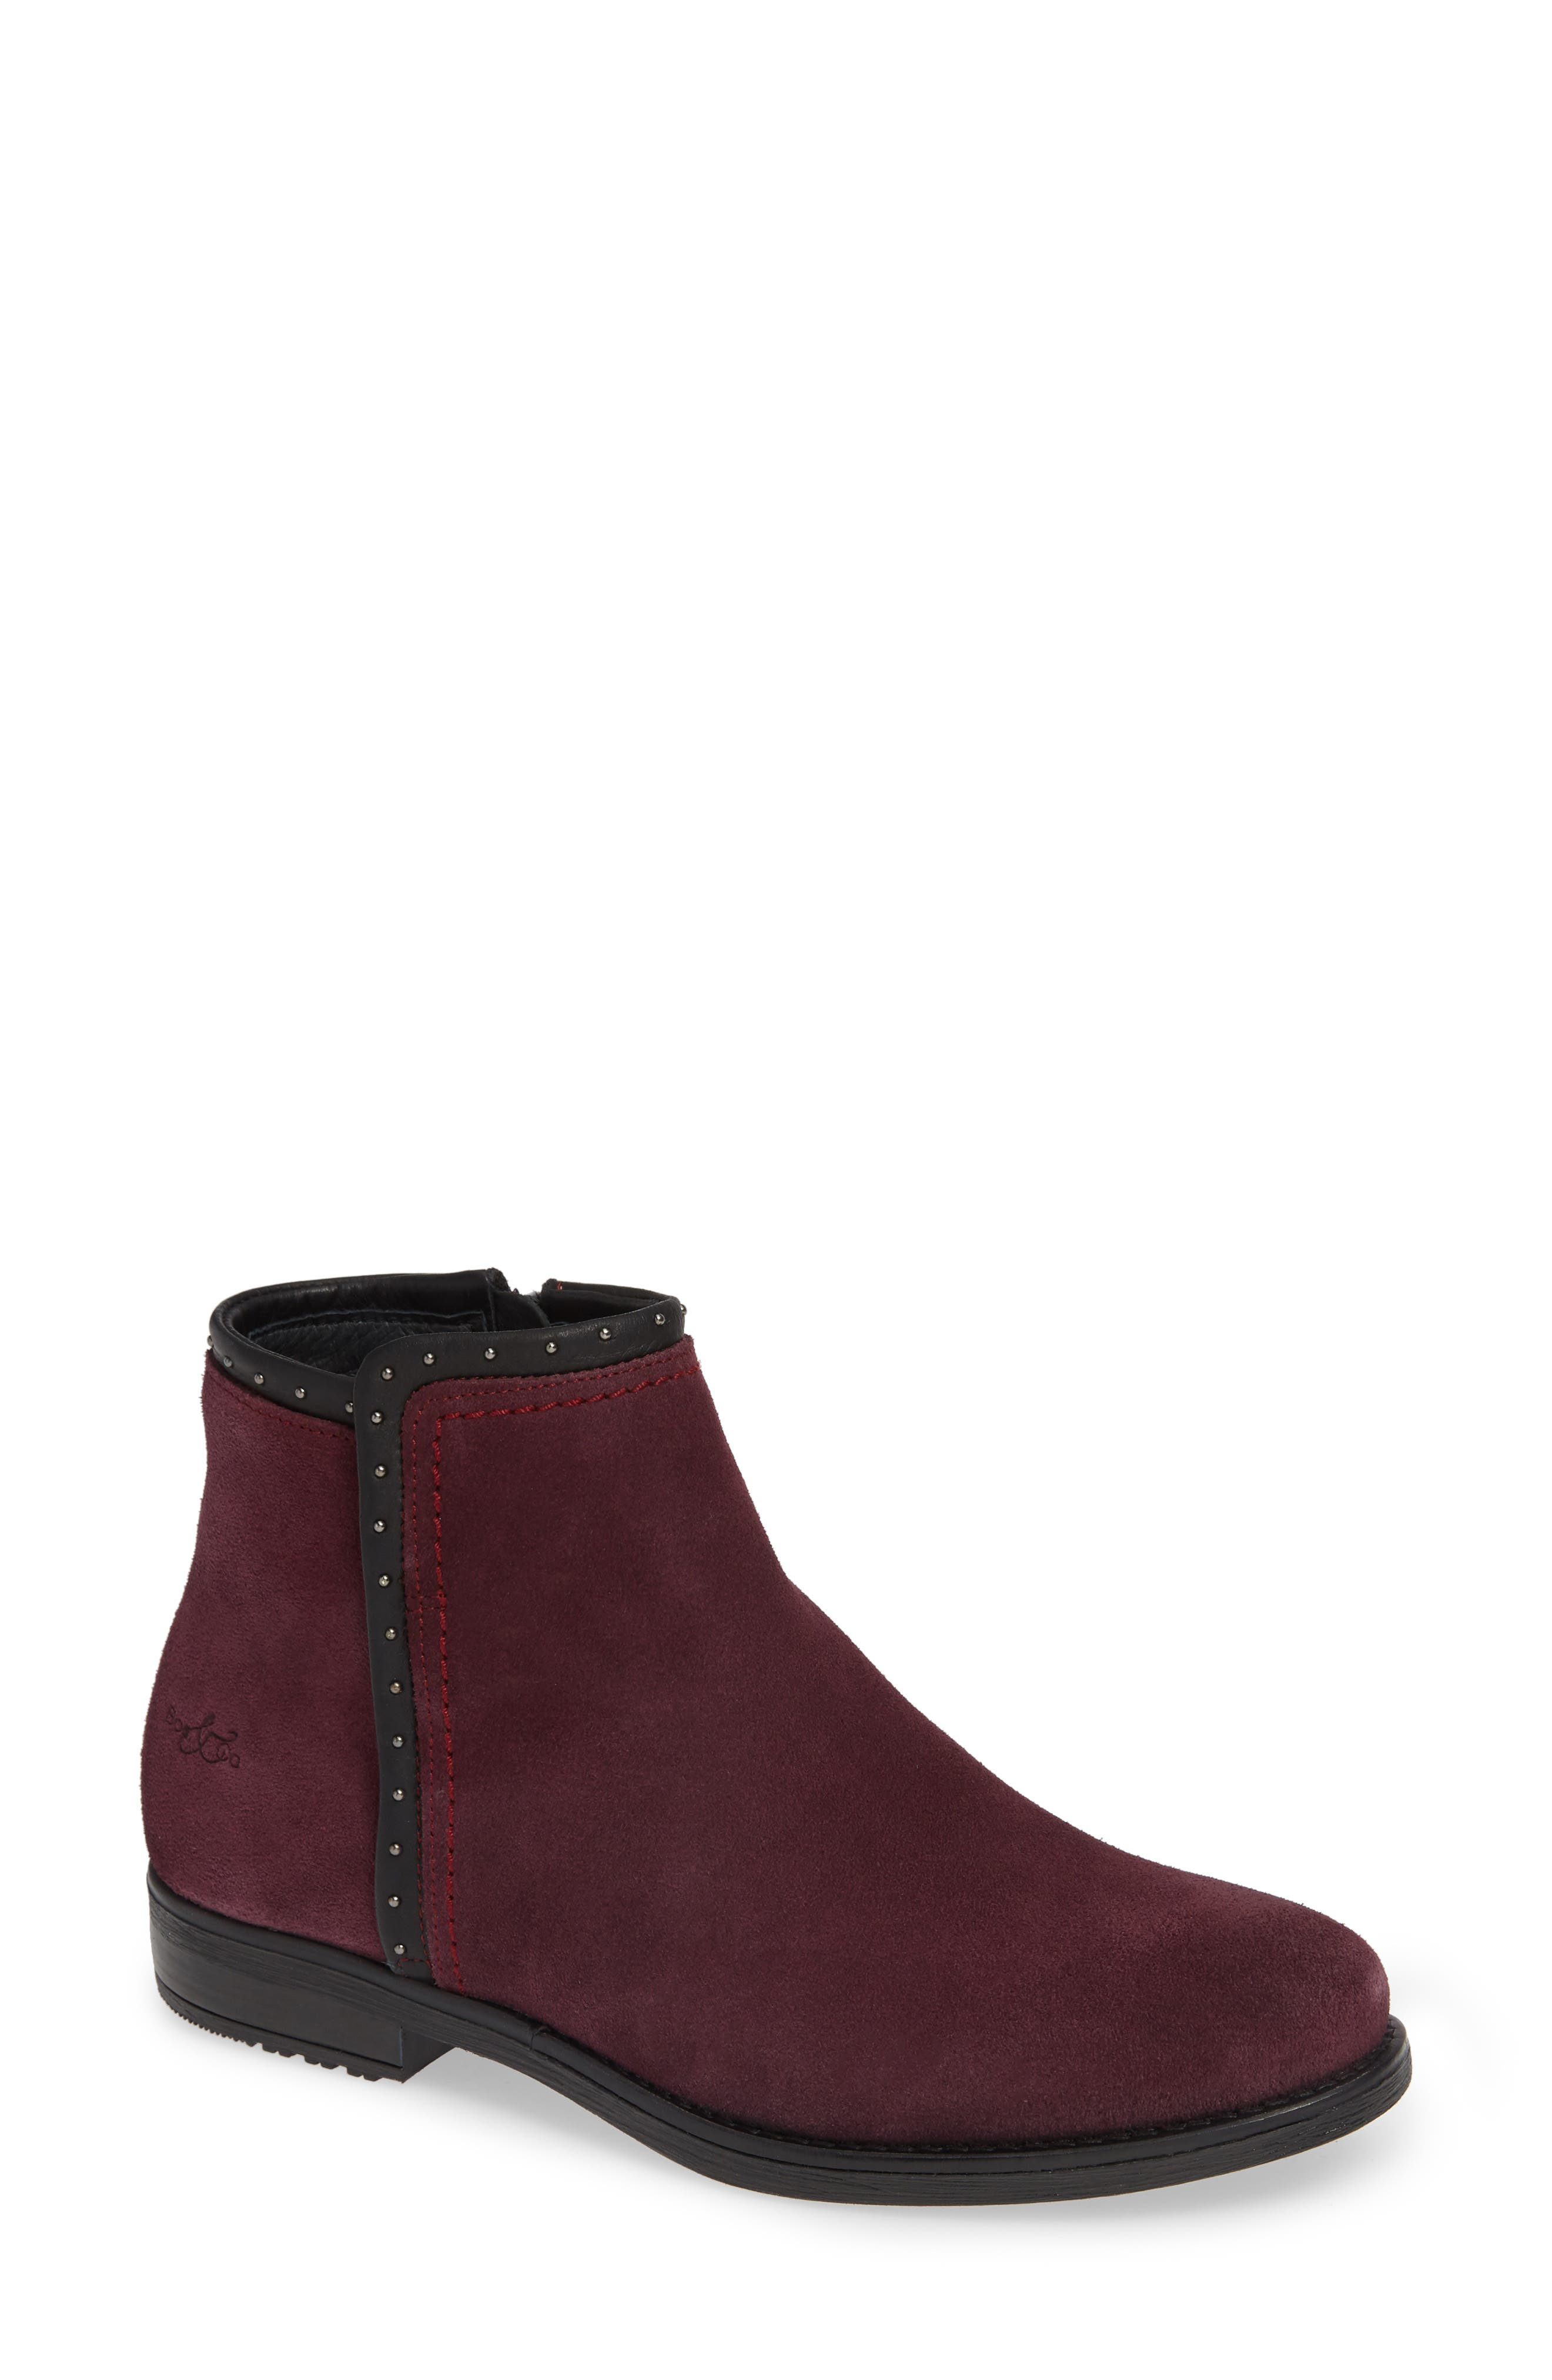 BOS. & CO., Ribos Bootie, Main thumbnail 1, color, PRUNE SUEDE